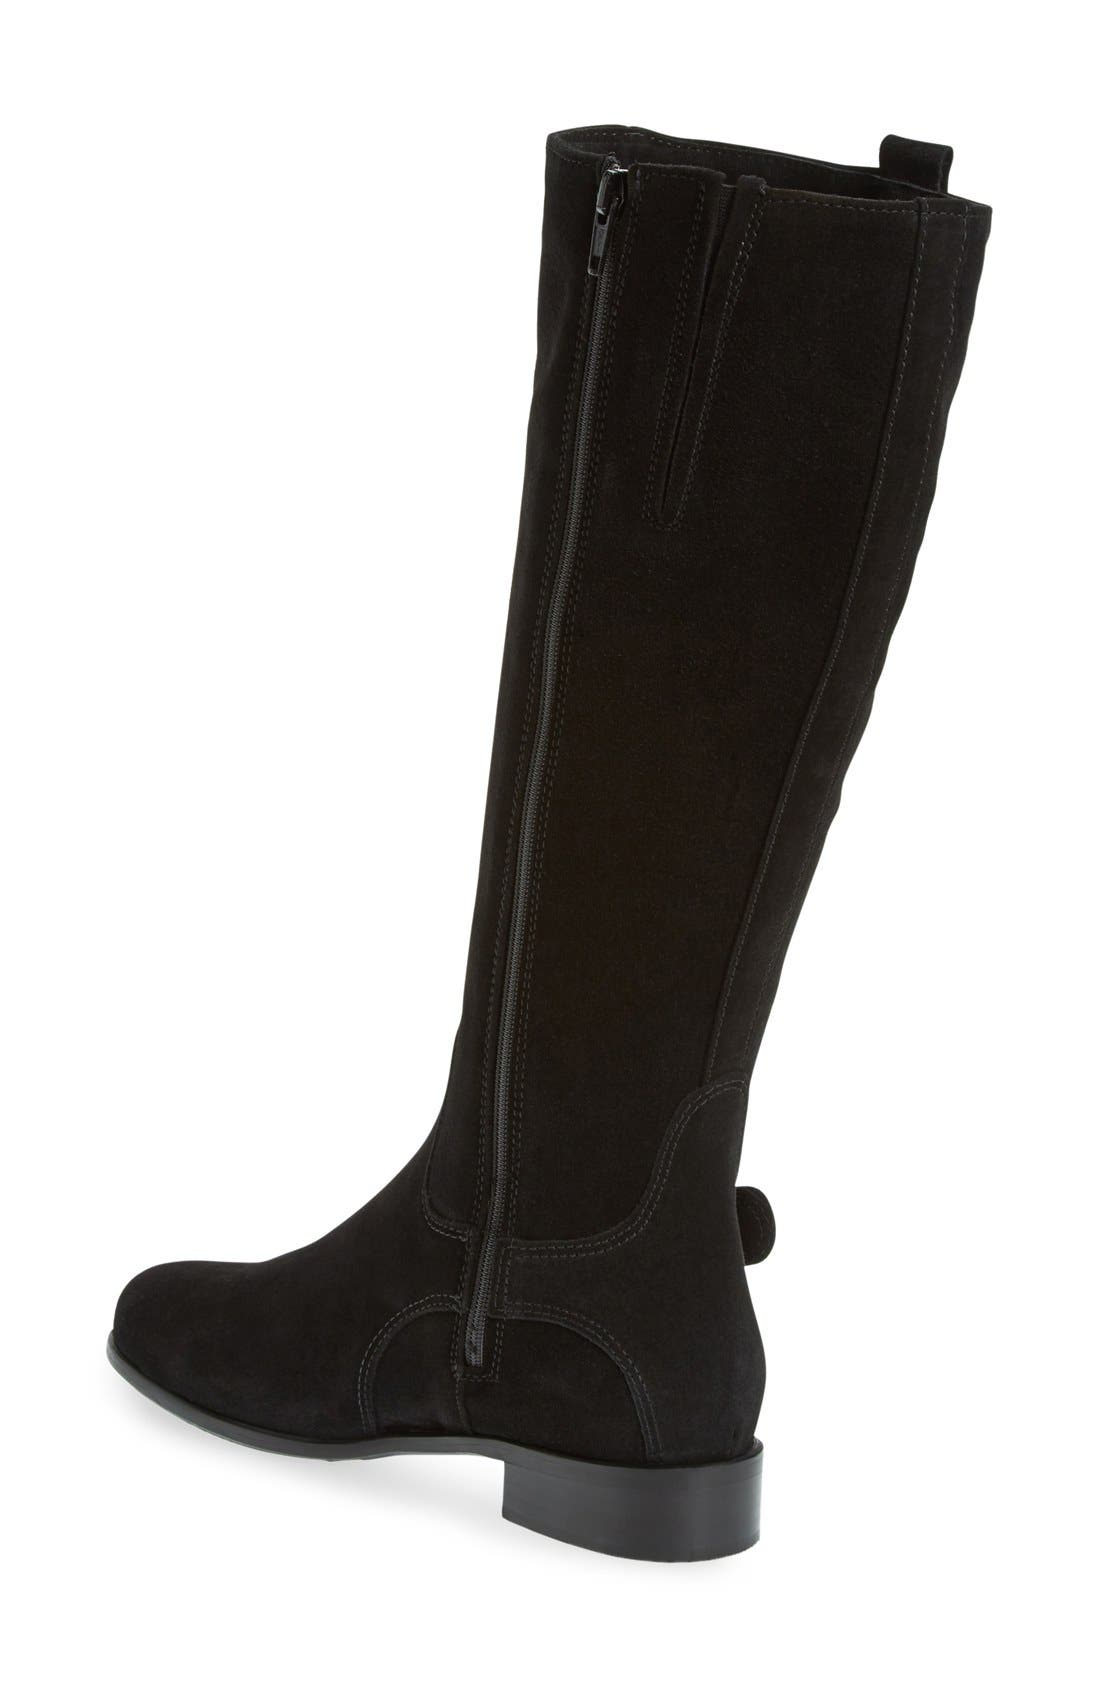 Alternate Image 2  - La Canadienne 'Stefanie' Waterproof Boot (Women)